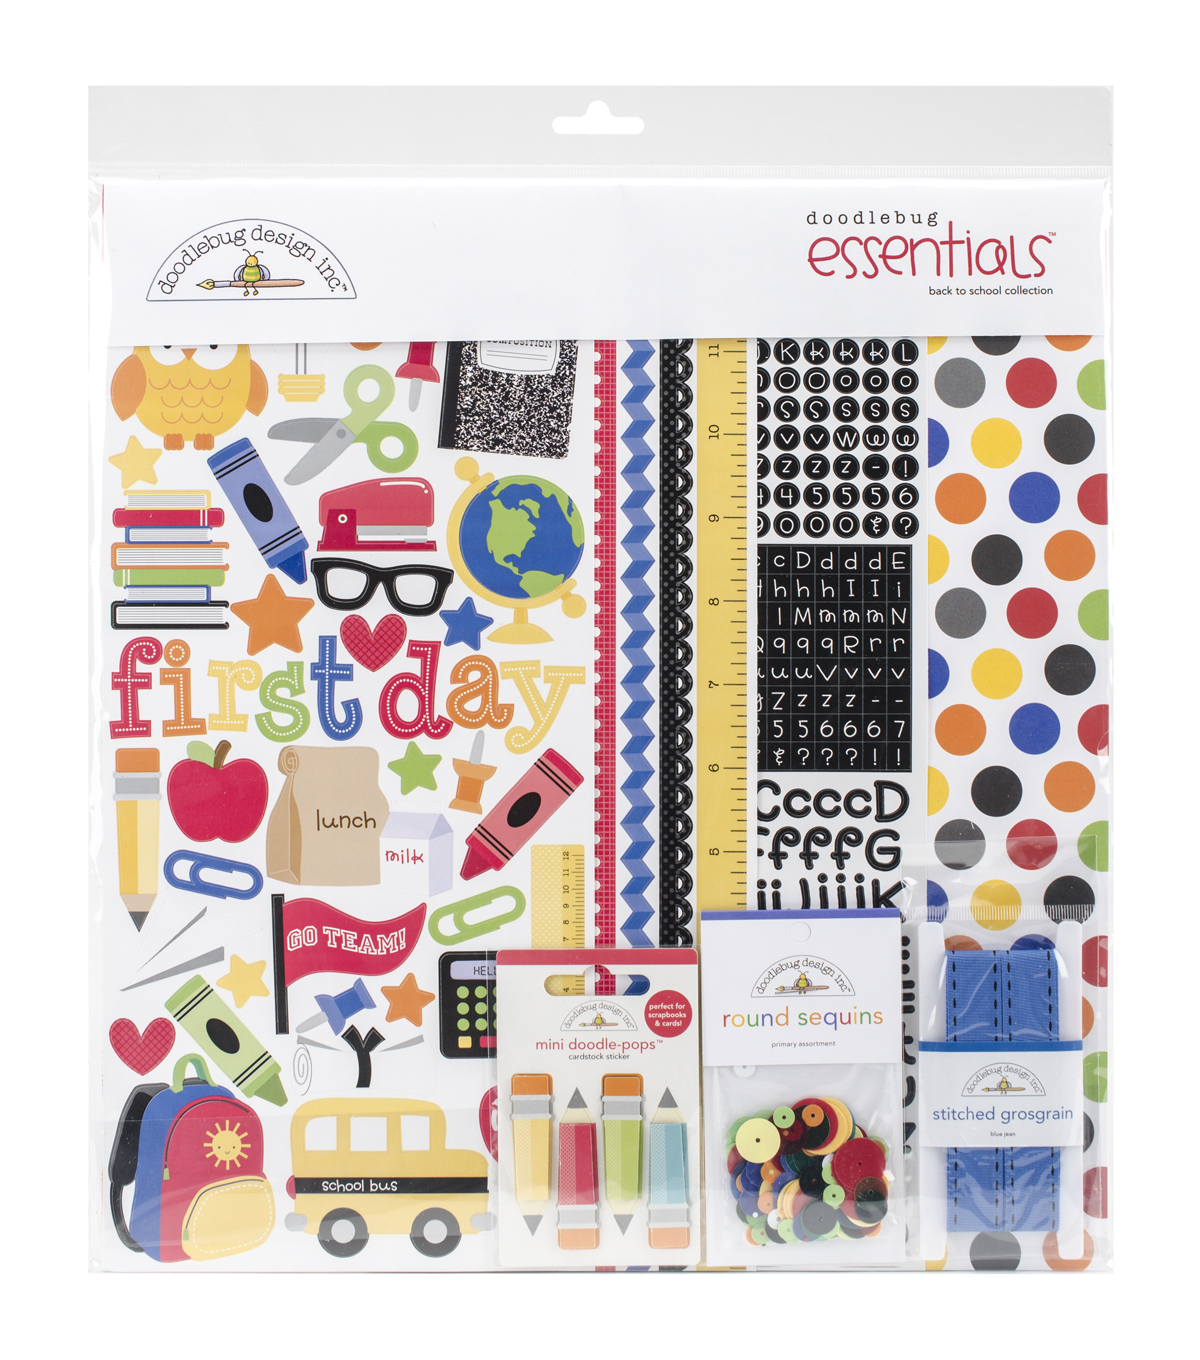 Bck 2 Schl-school Page Kit12x12